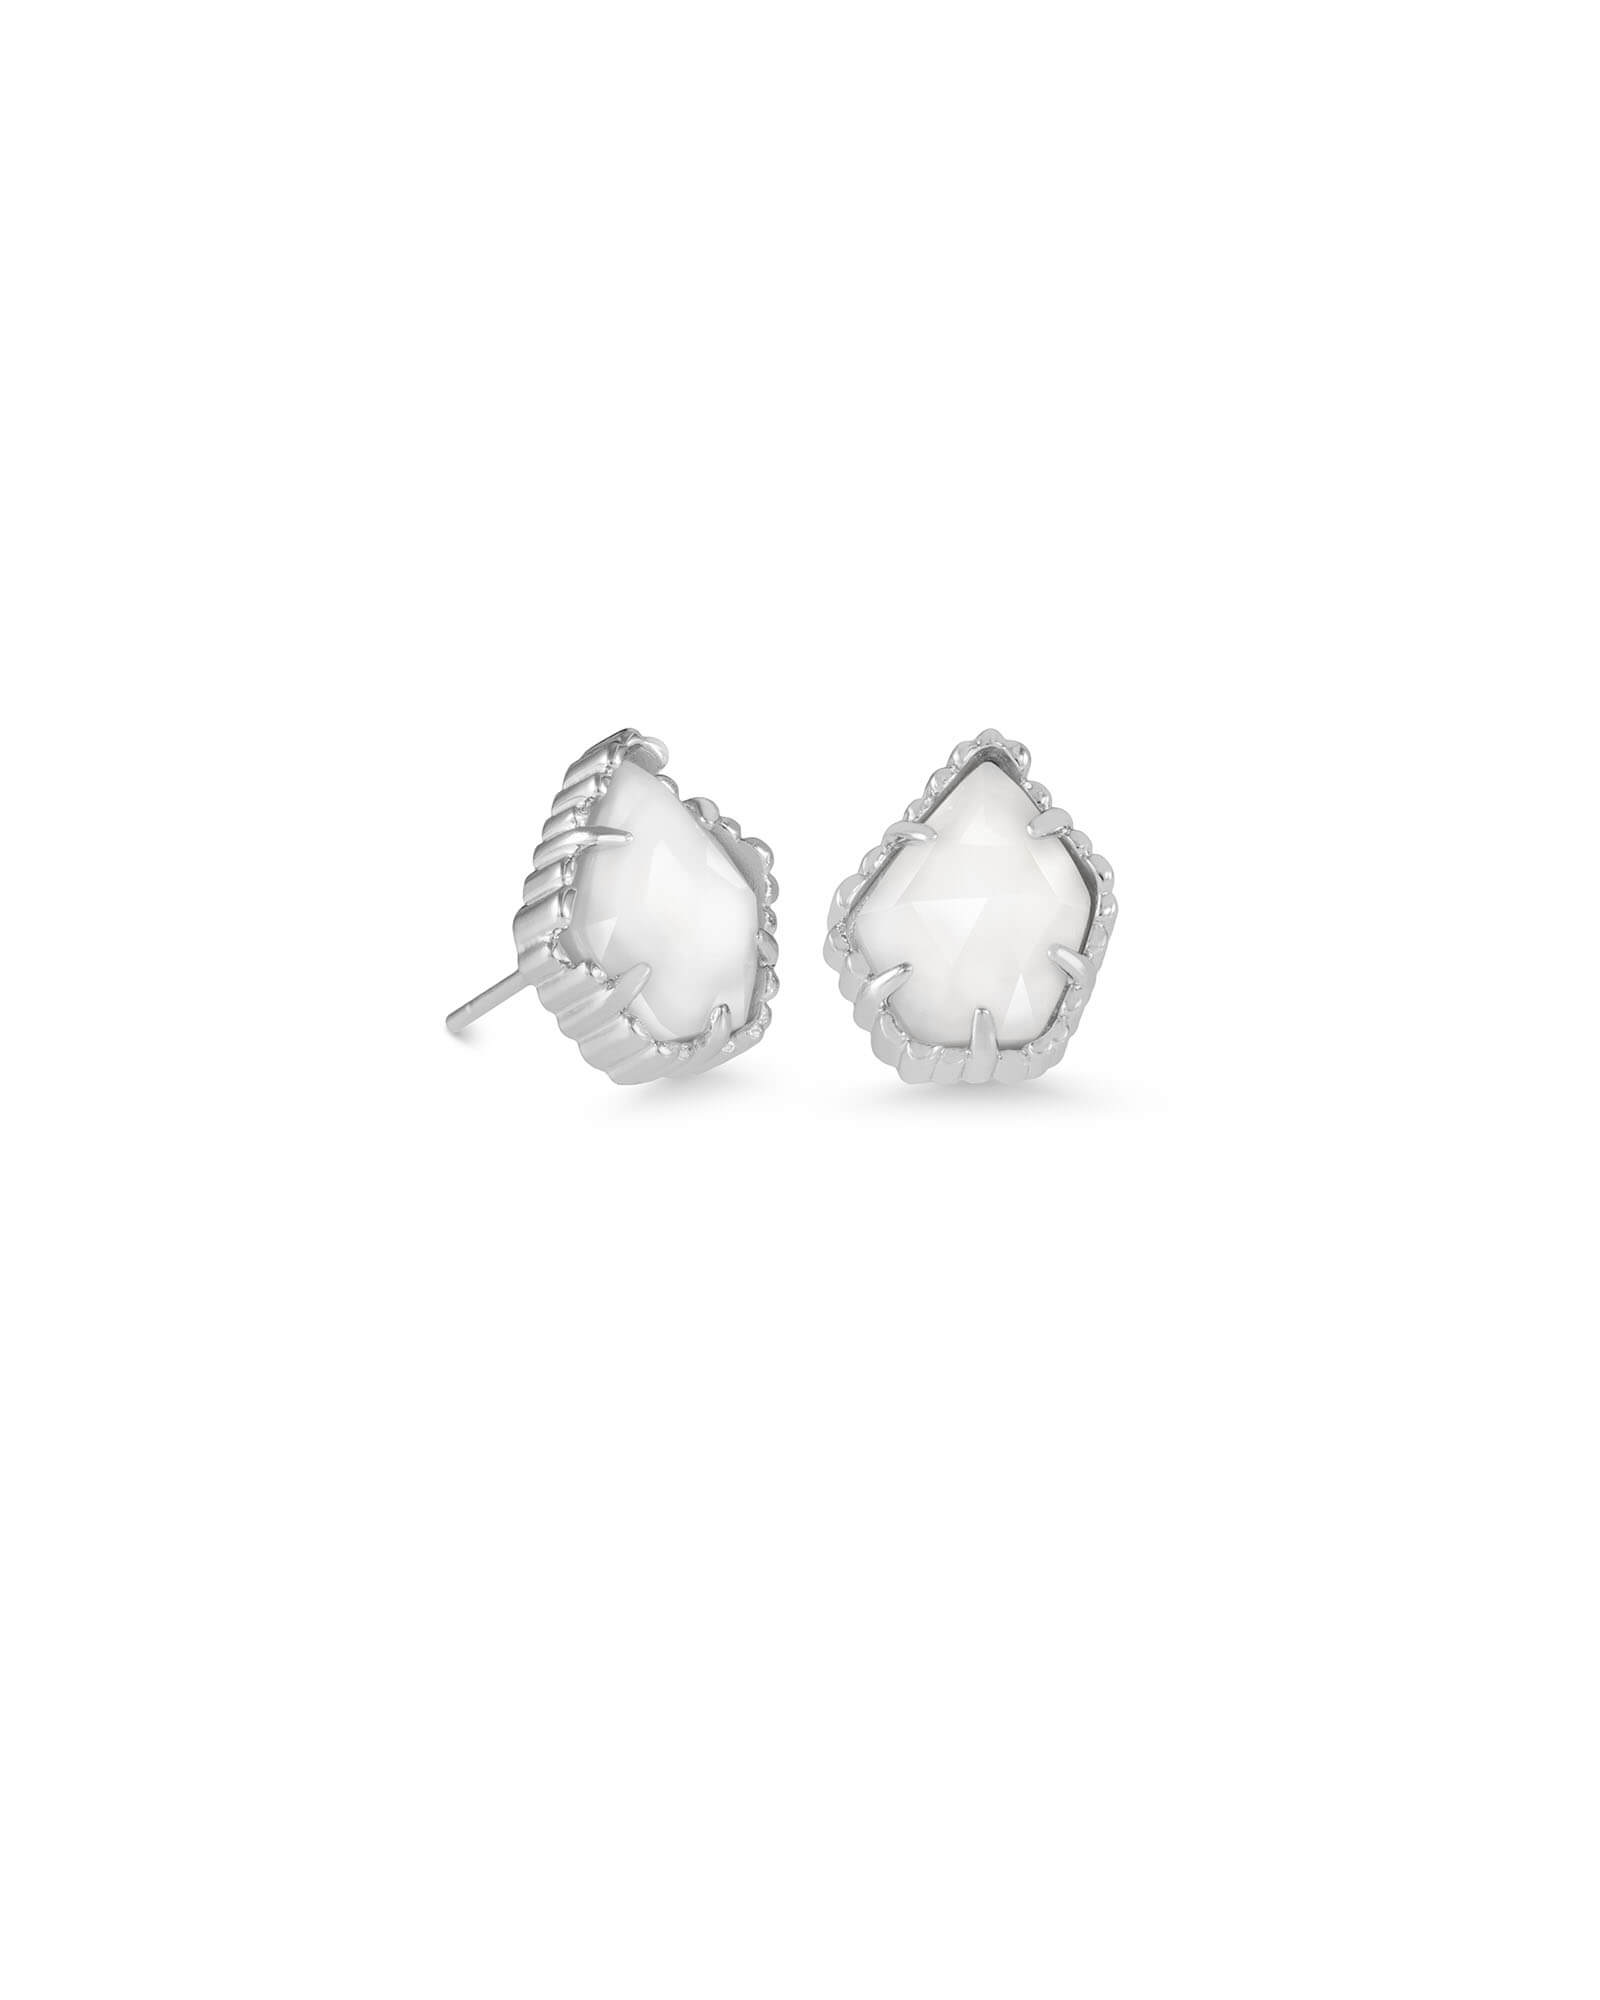 Tessa Silver Stud Earrings in White Pearl